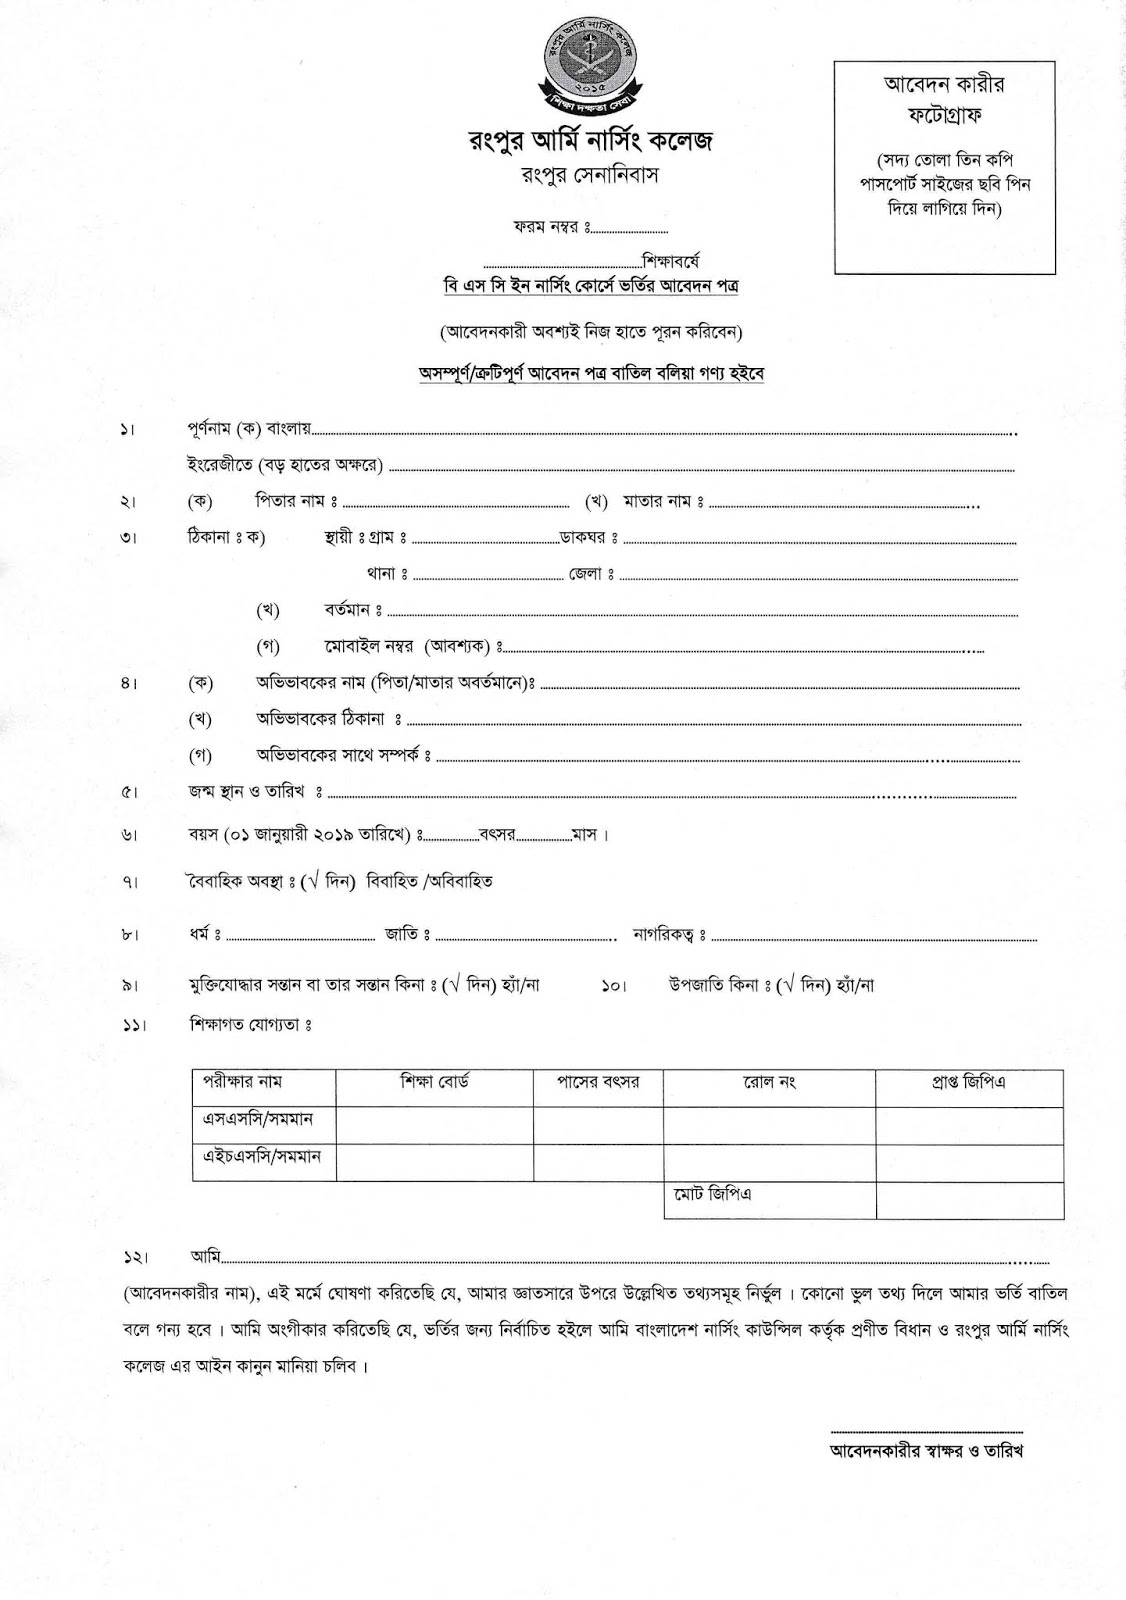 Rangpur Army Nursing College (RANC) Nurse Recruitment Application Form